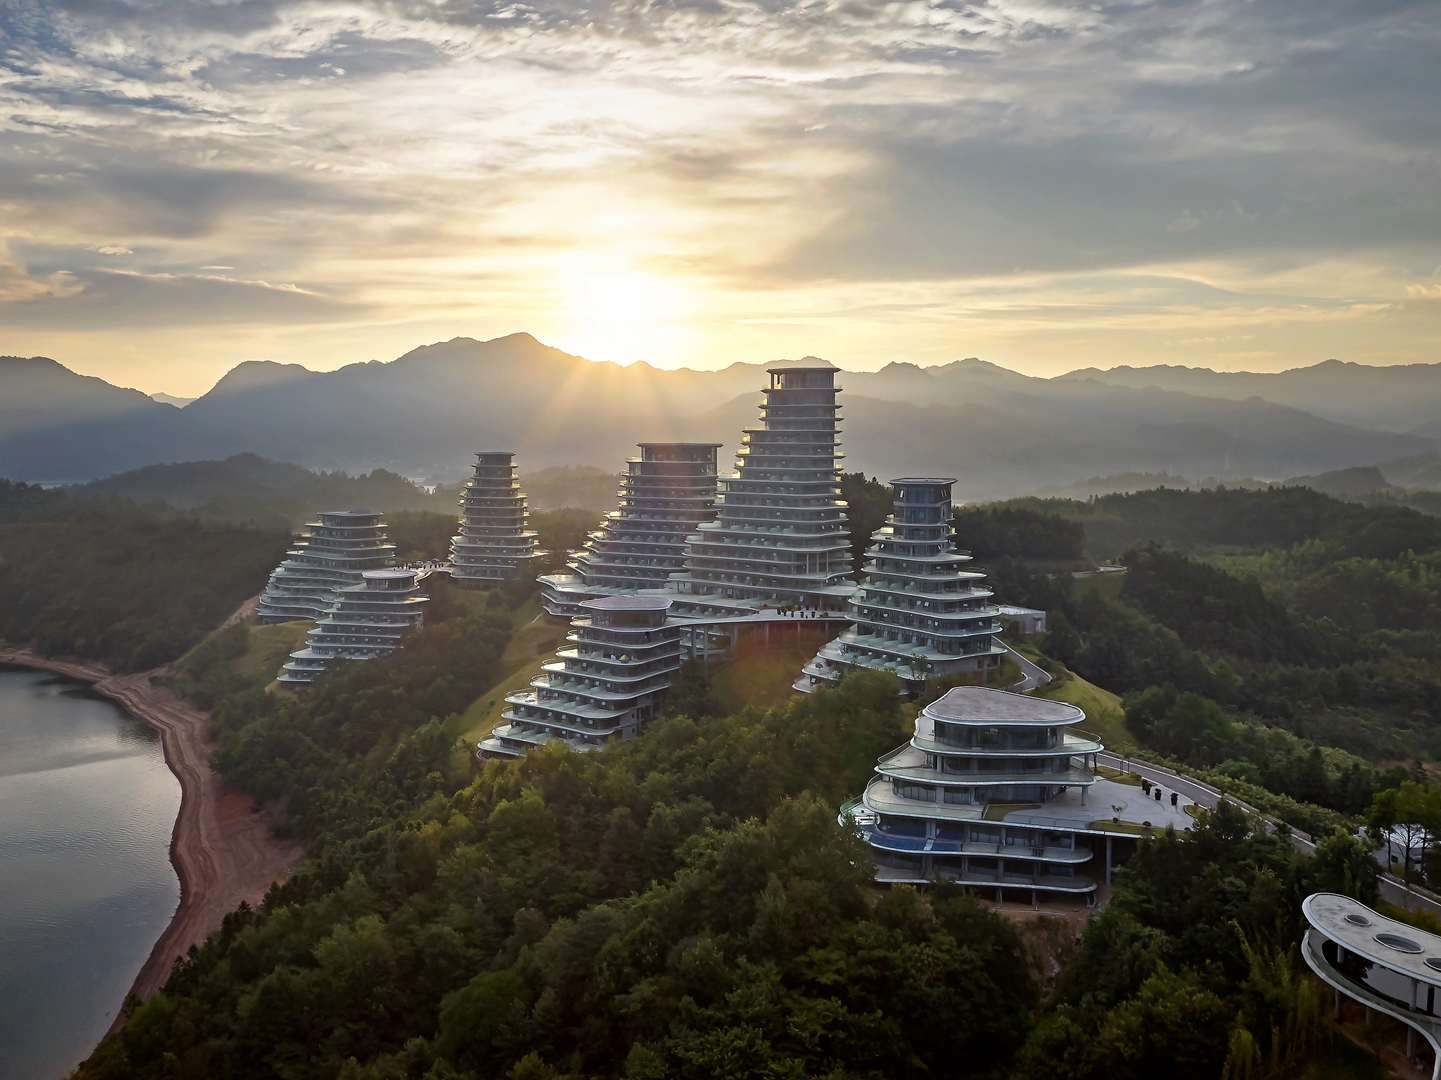 MAD_Huangshan Mountain Village_19_by Hufton+Crow (Copy)